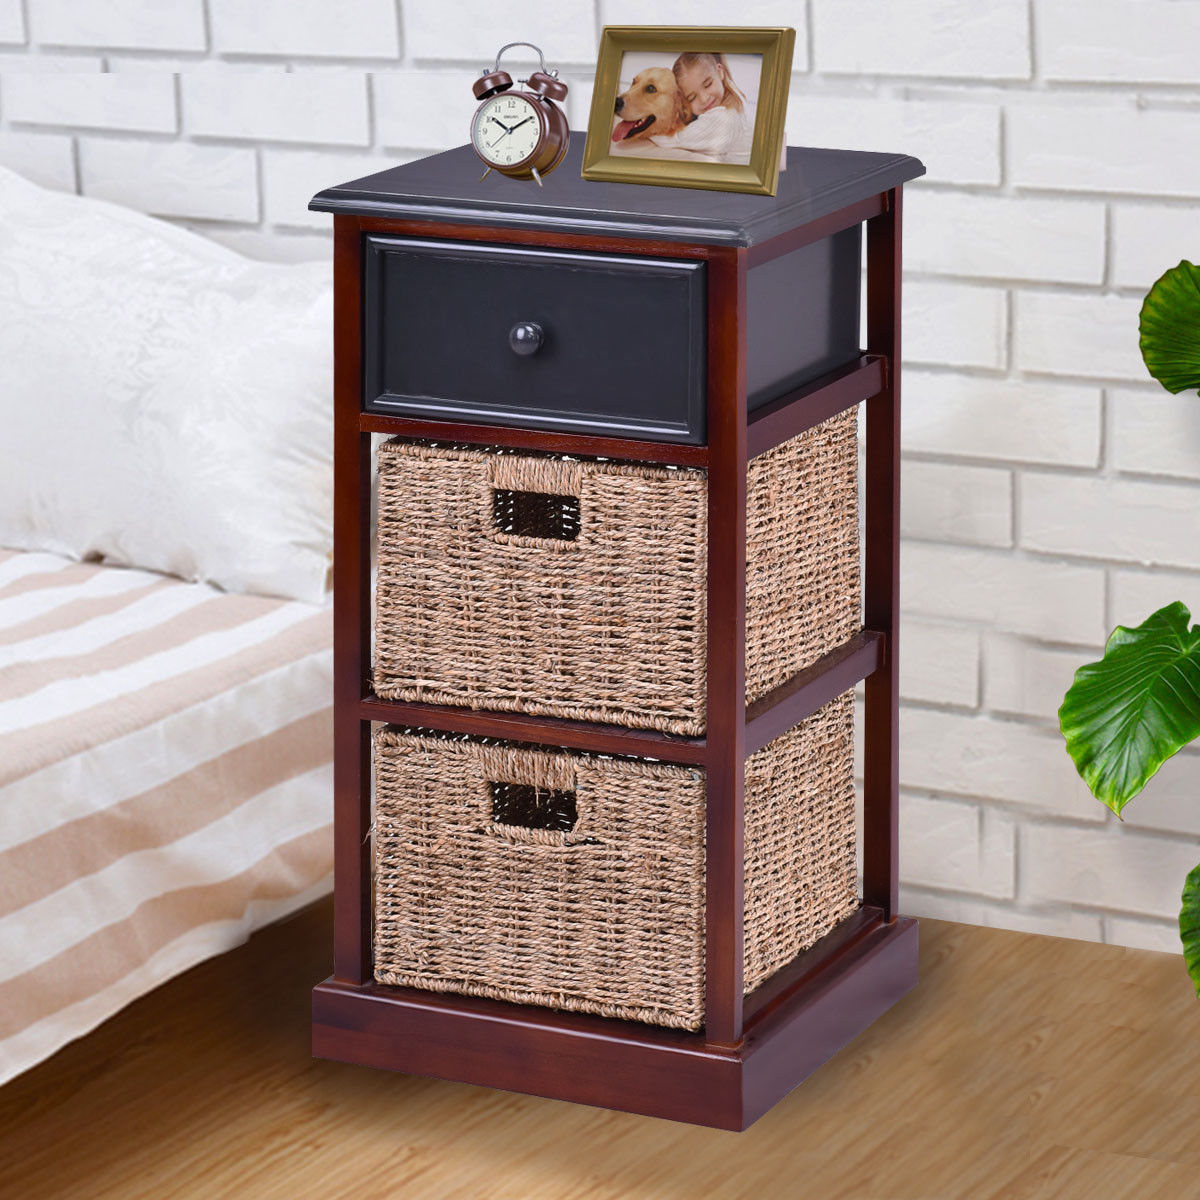 Us 99 99 Giantex 3 Tiers Wood Nightstand With 1 Drawer 2 Baskets Modern Bedside End Table Organizer Brown Bedroom Furniture Hw56724 On Aliexpress